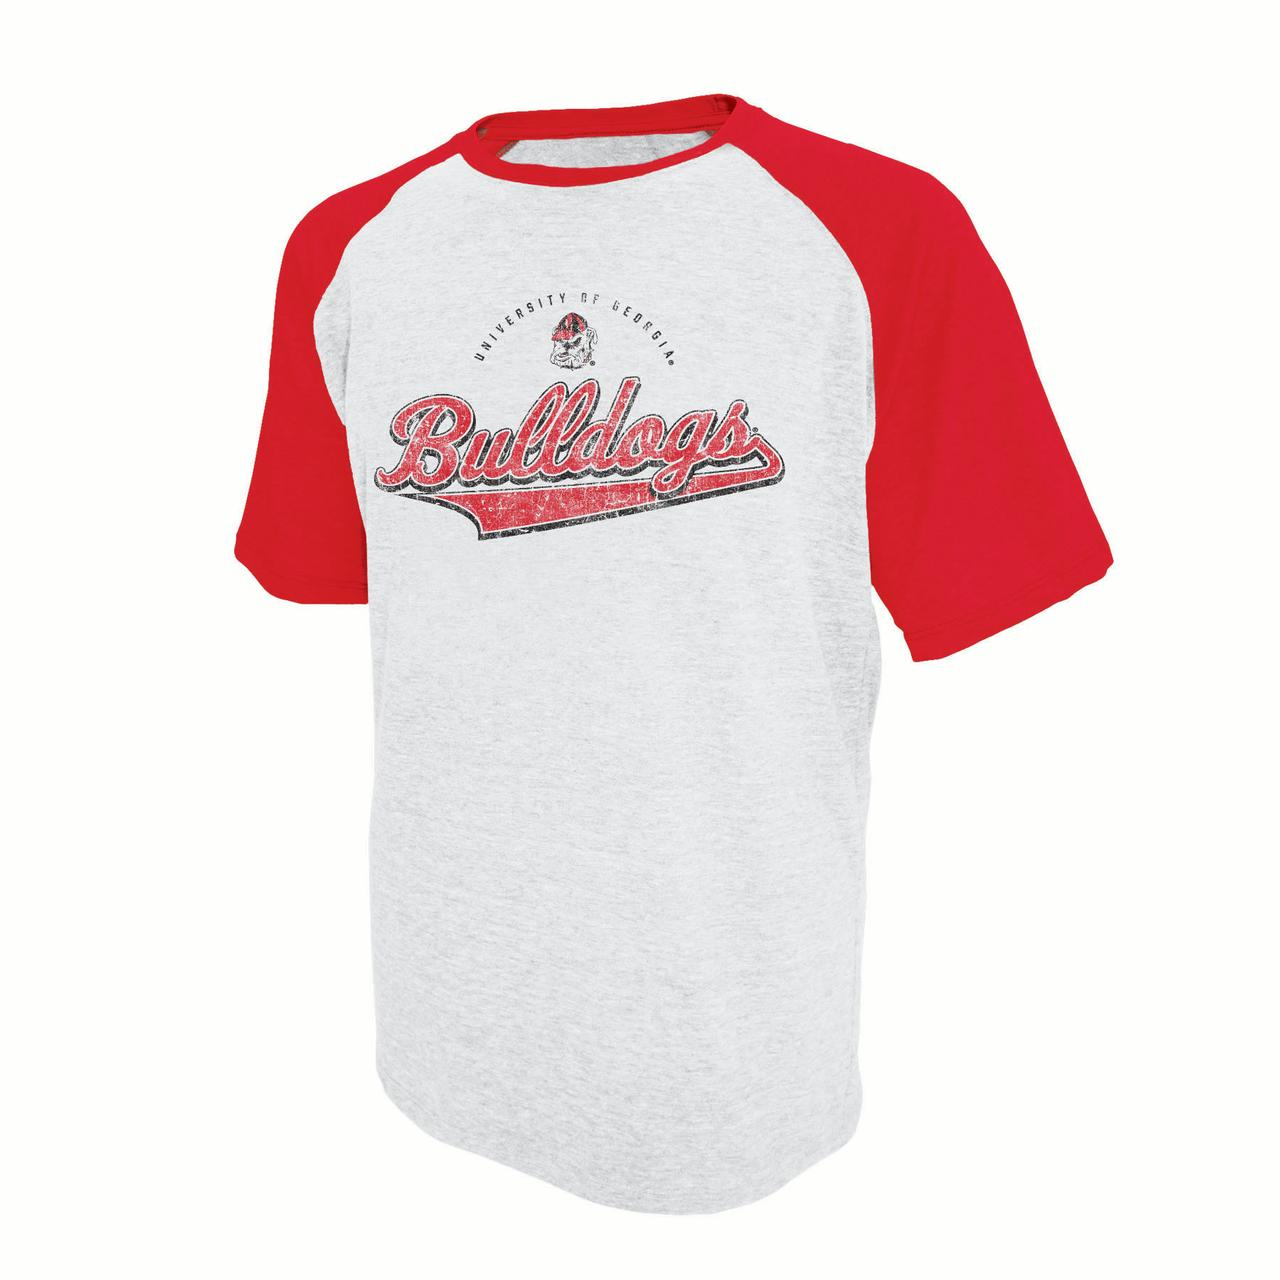 Men's Russell White Georgia Bulldogs Athletic Fit Distressed T-Shirt